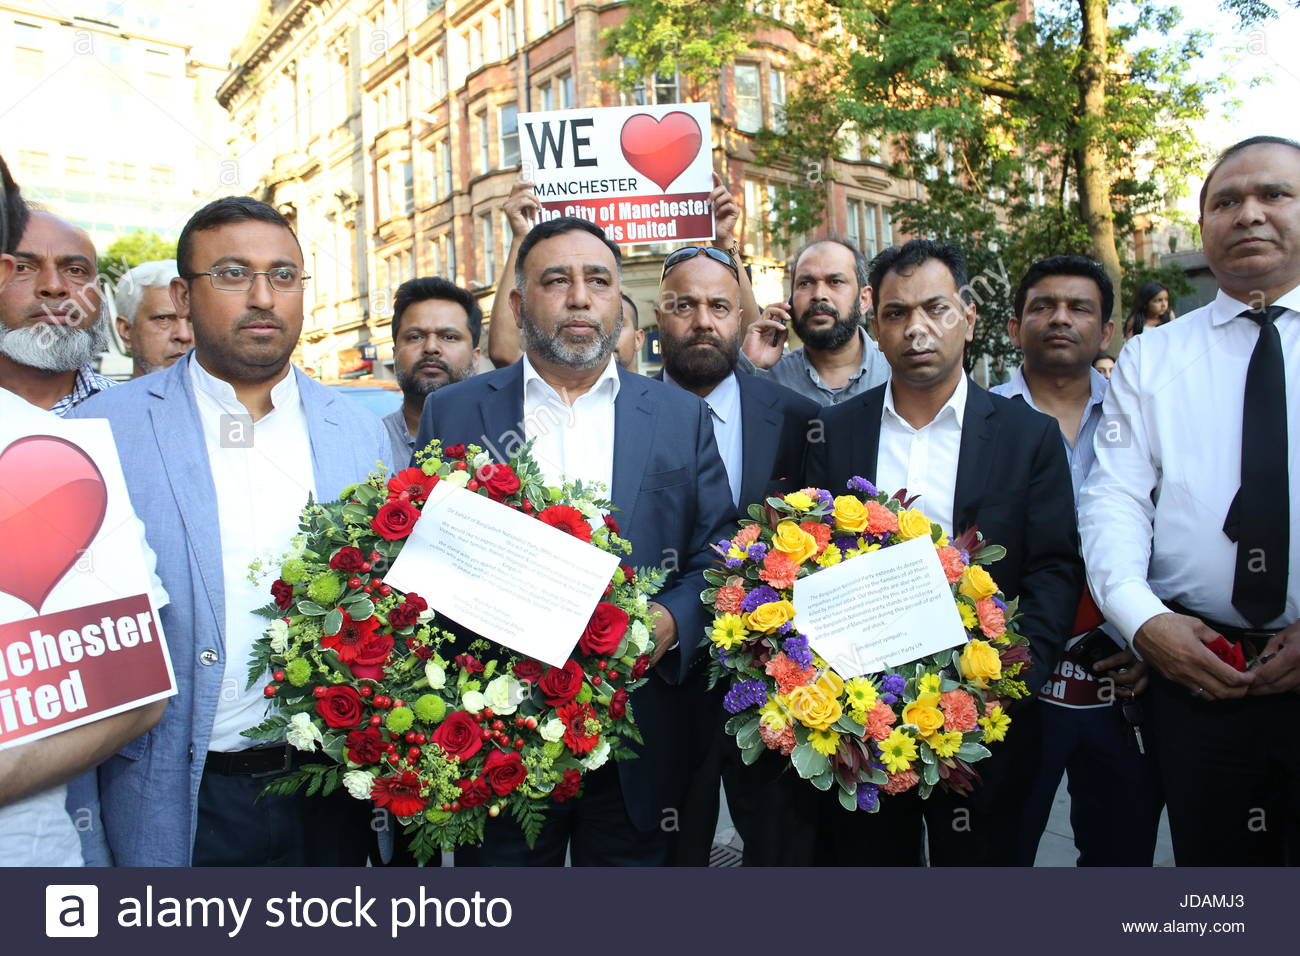 Members of the Muslim community in Manchester arrive in St Ann's Square to lay wreaths in honour of the victims - Stock Image